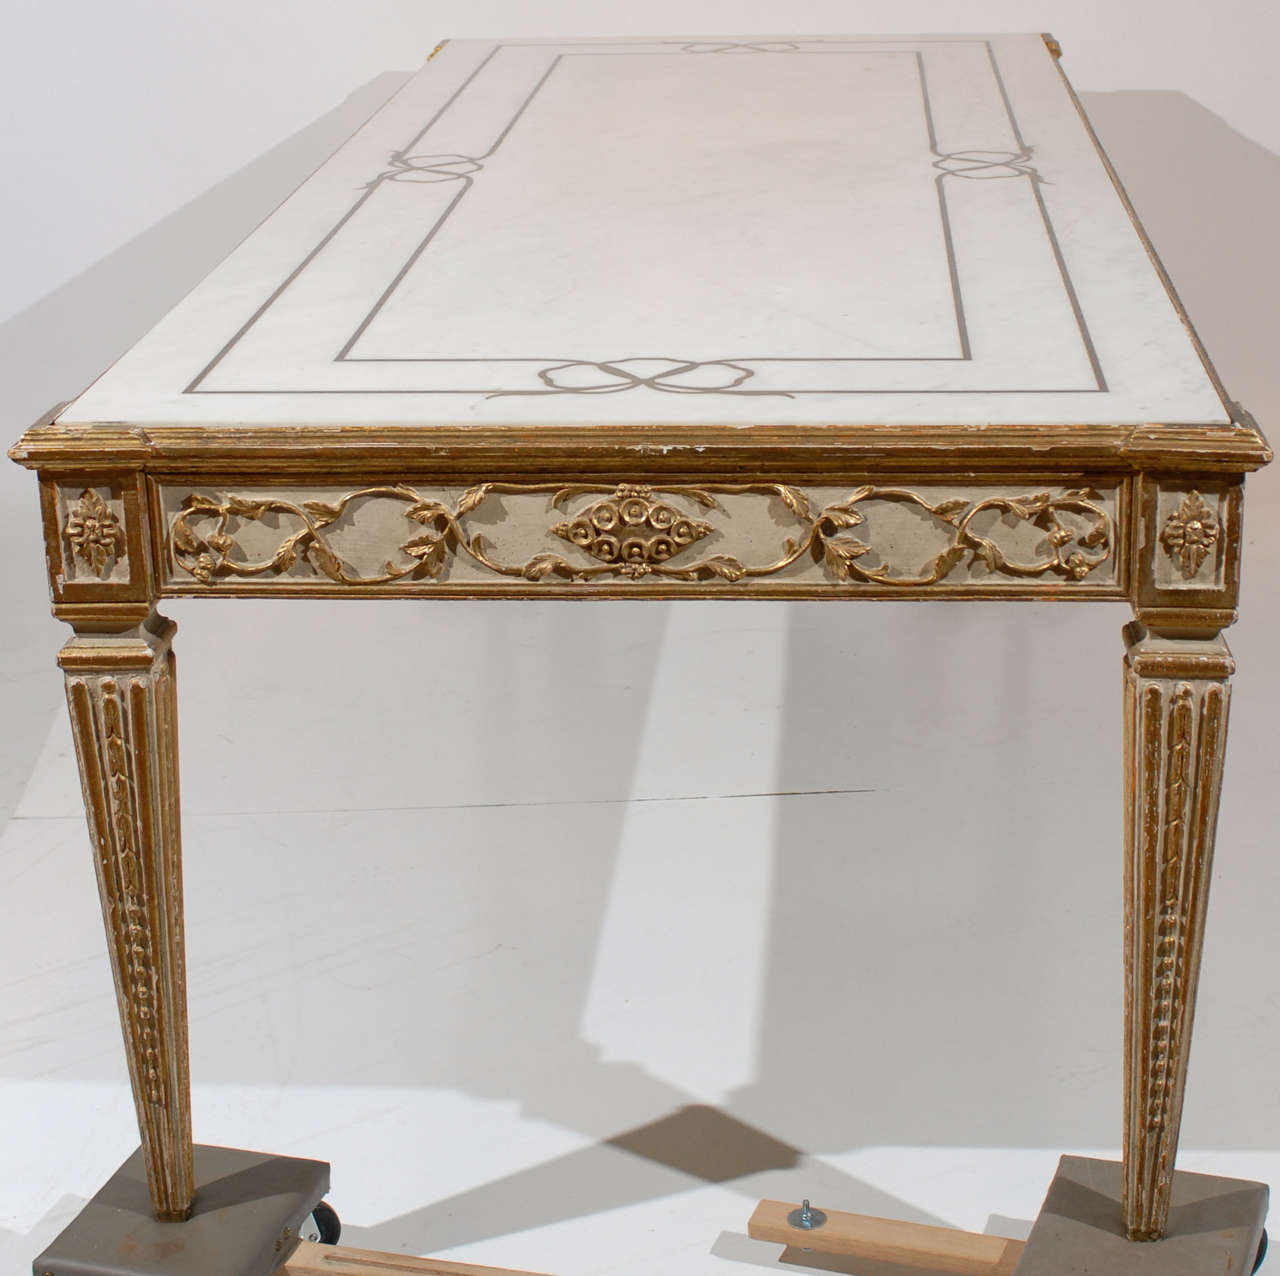 Large Continental Inlaid Marble Top Dining Table with  : abp492101 from www.1stdibs.com size 1280 x 1276 jpeg 110kB